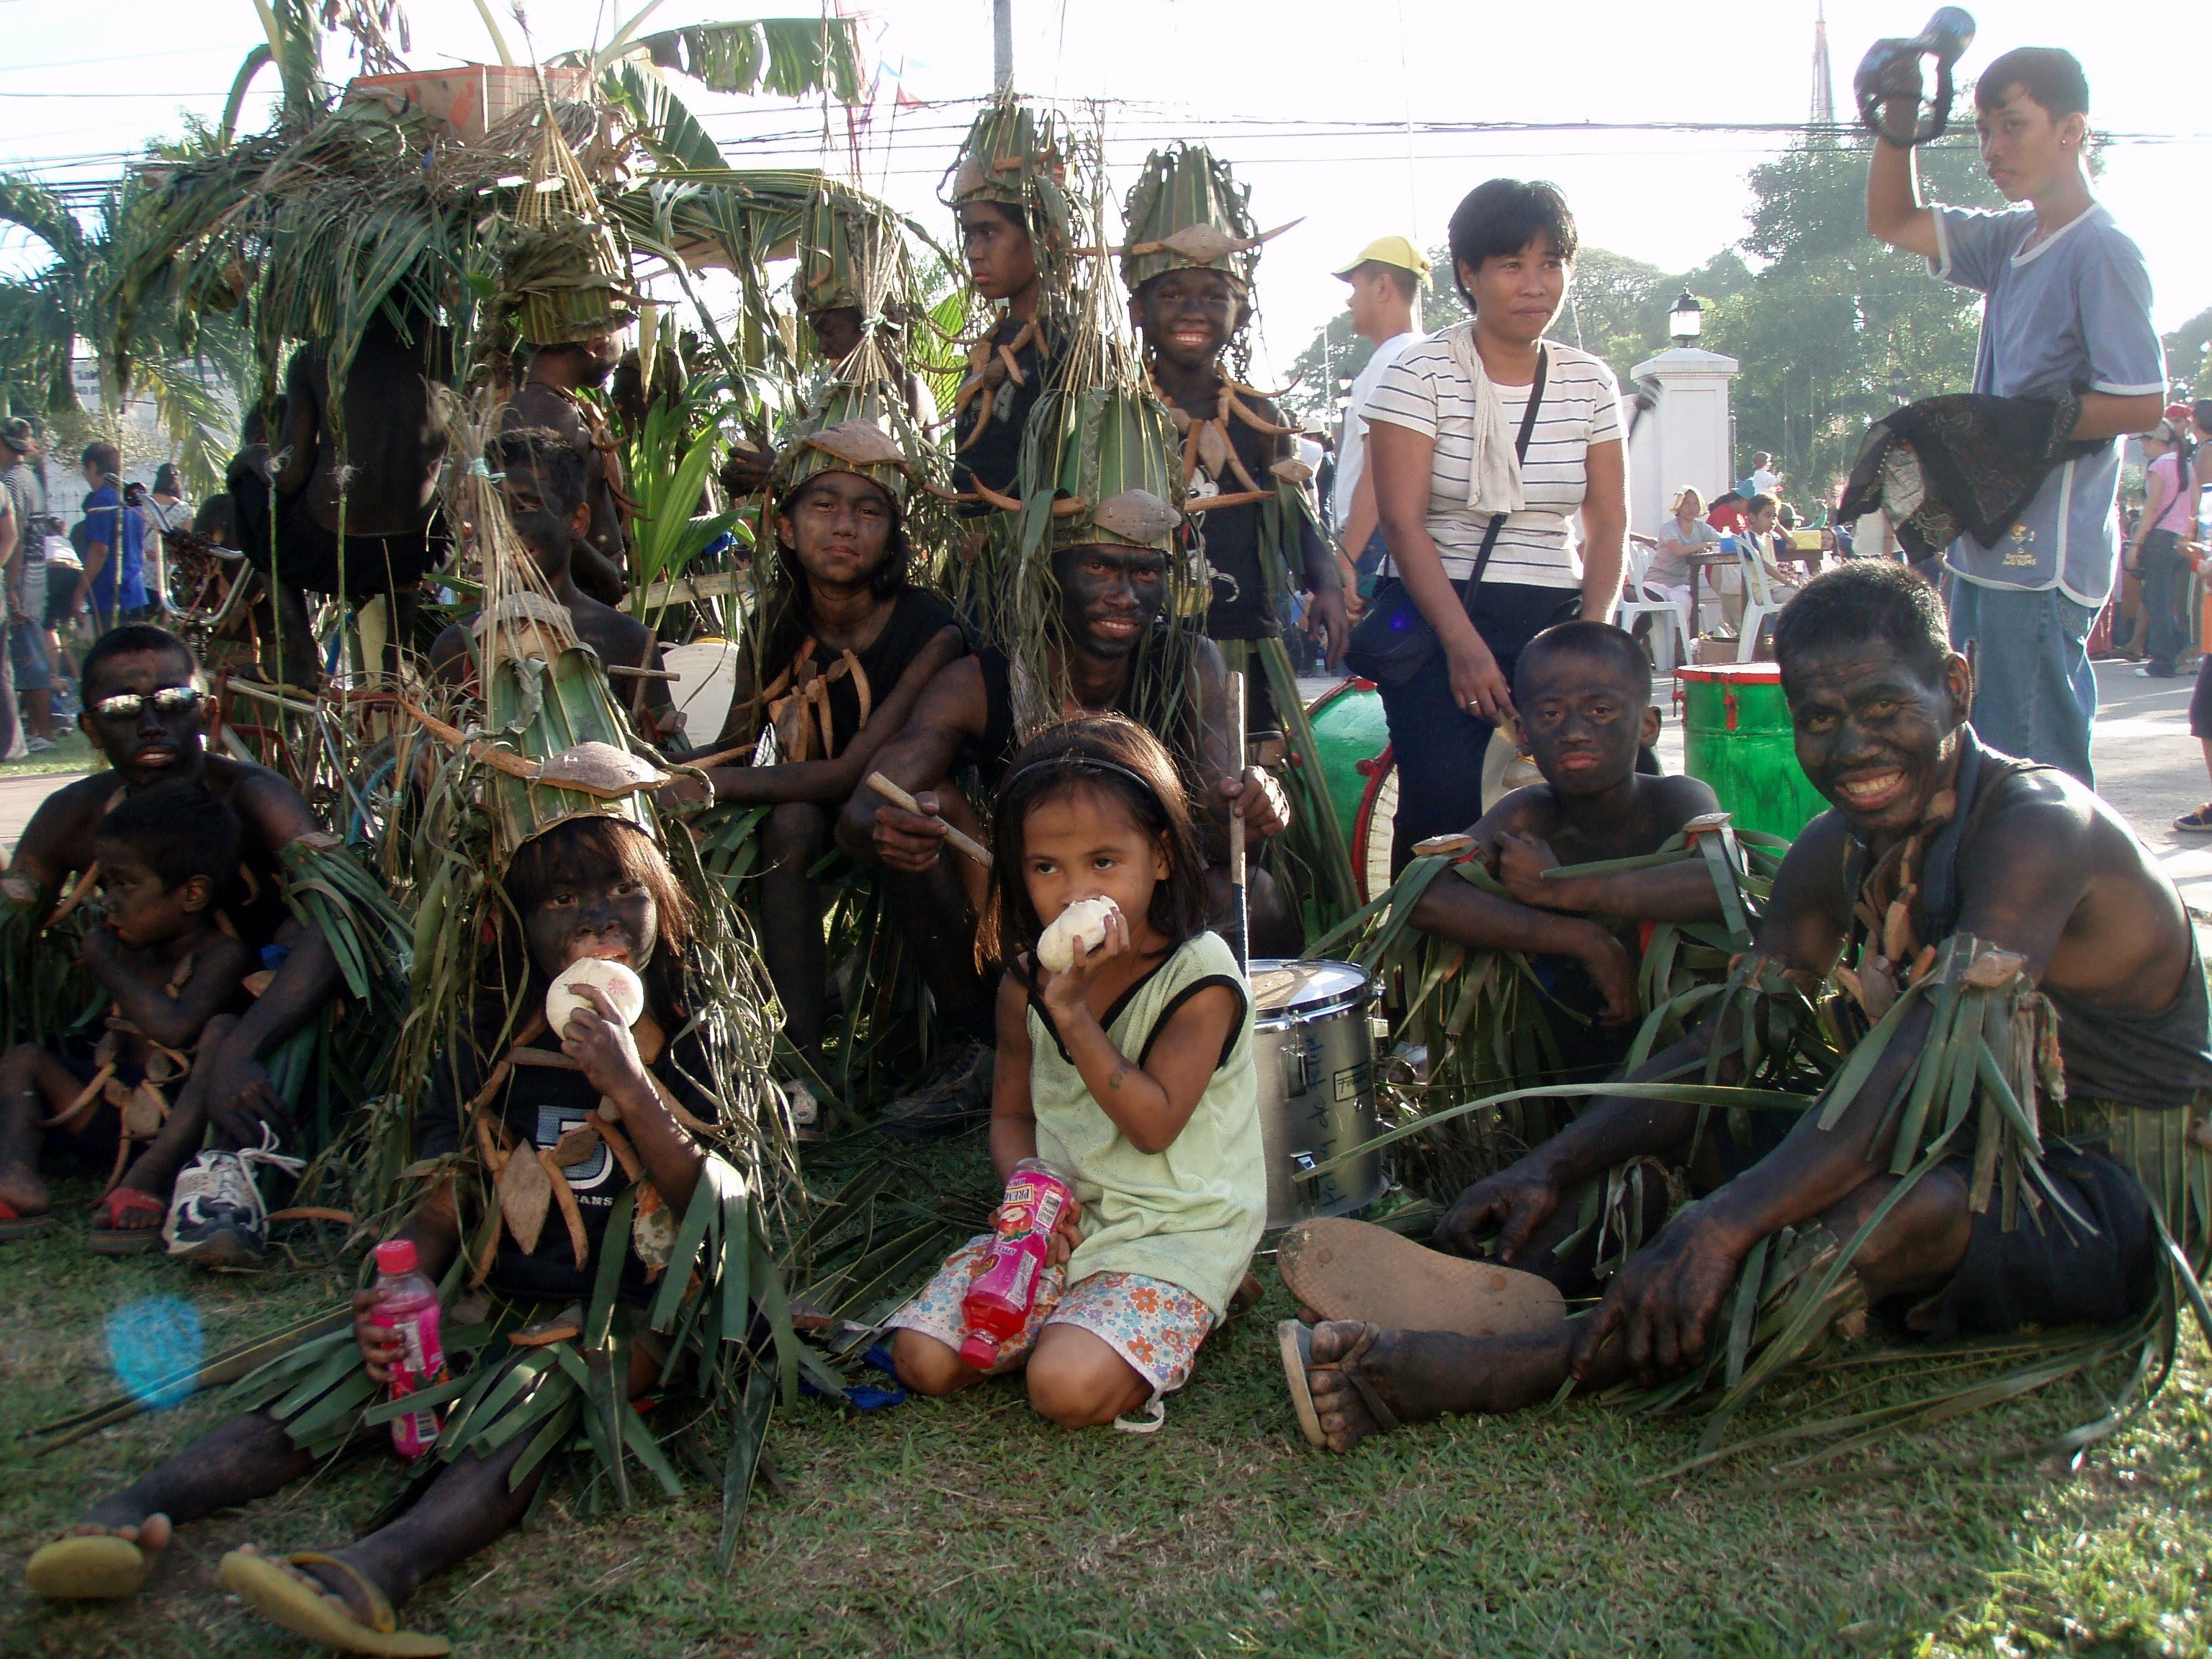 Aklanon - Visayas: Remaining Treasures of the Indigenous People